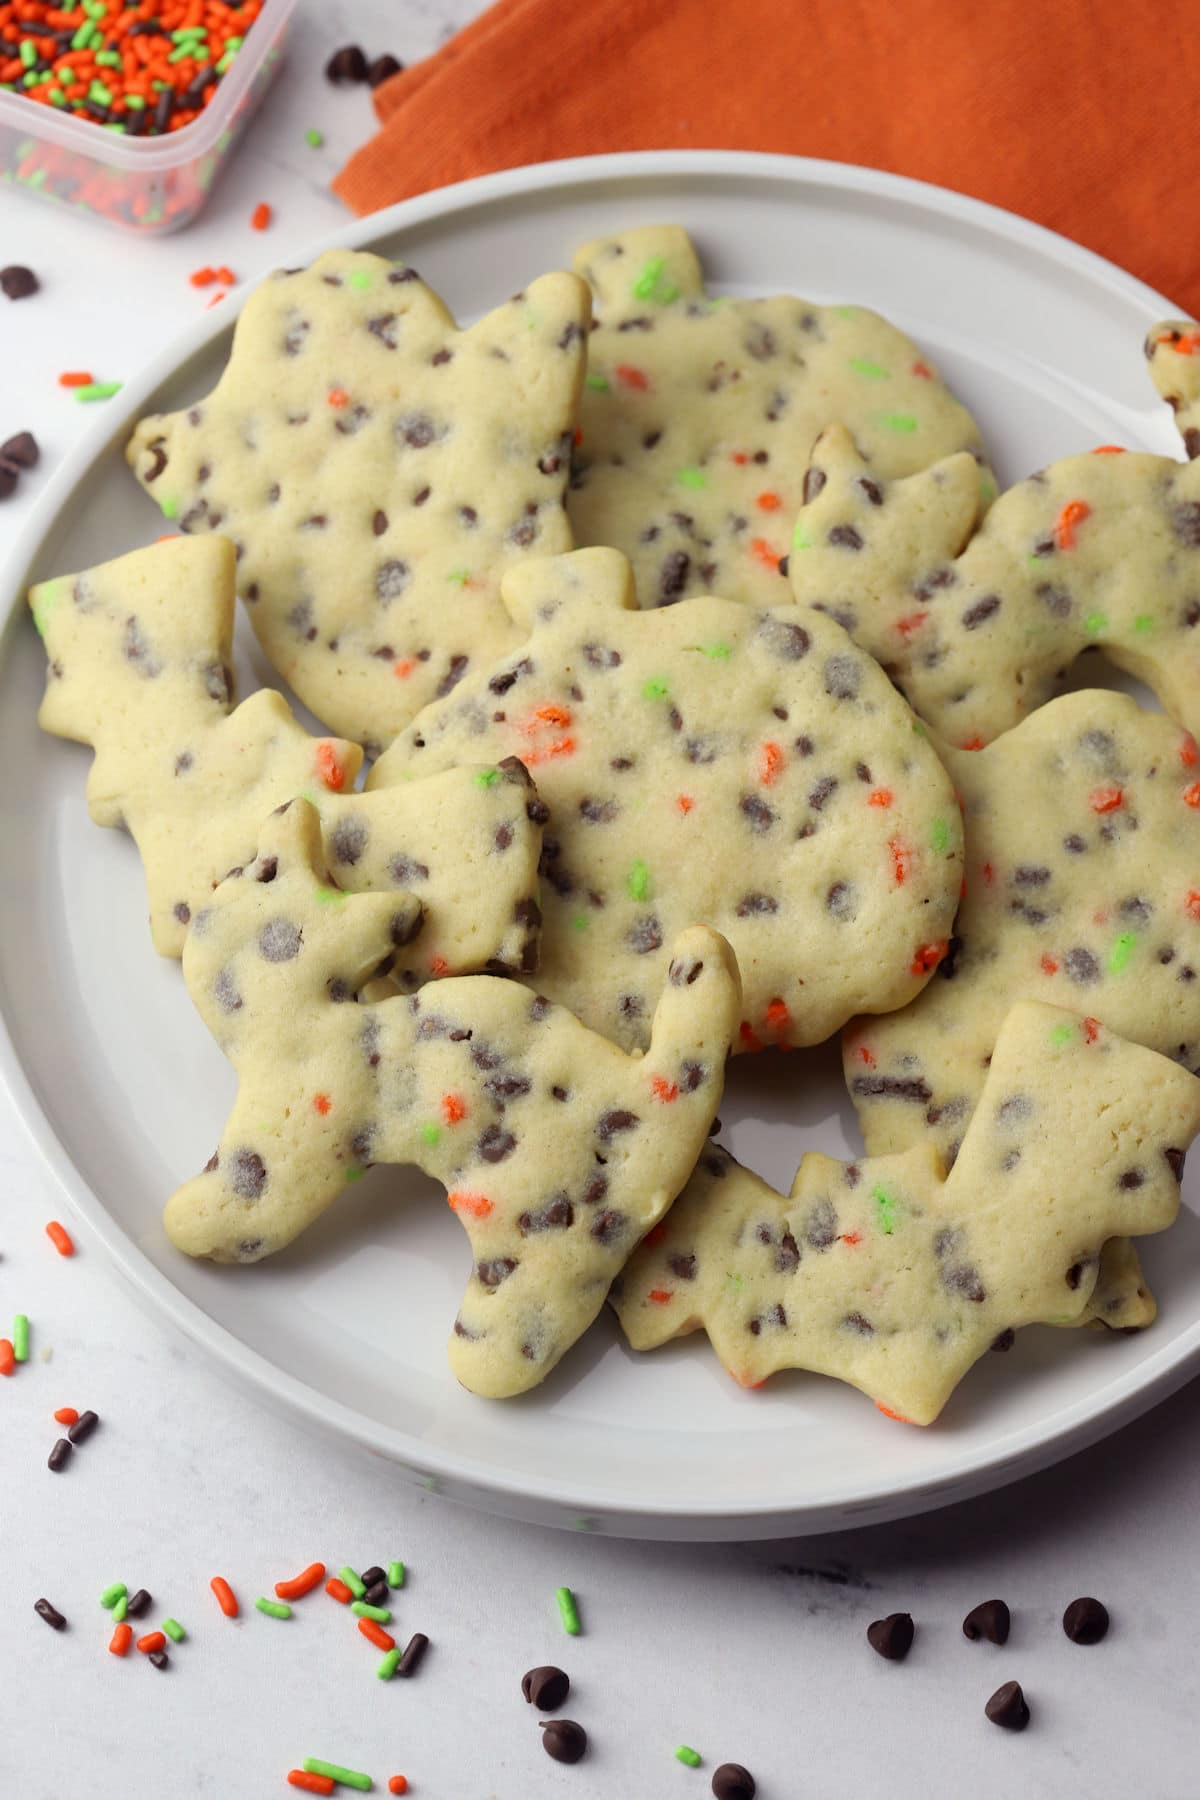 A white plate filled with chocolate chip cut out cookies shaped like cats, pumpkins, and bats.